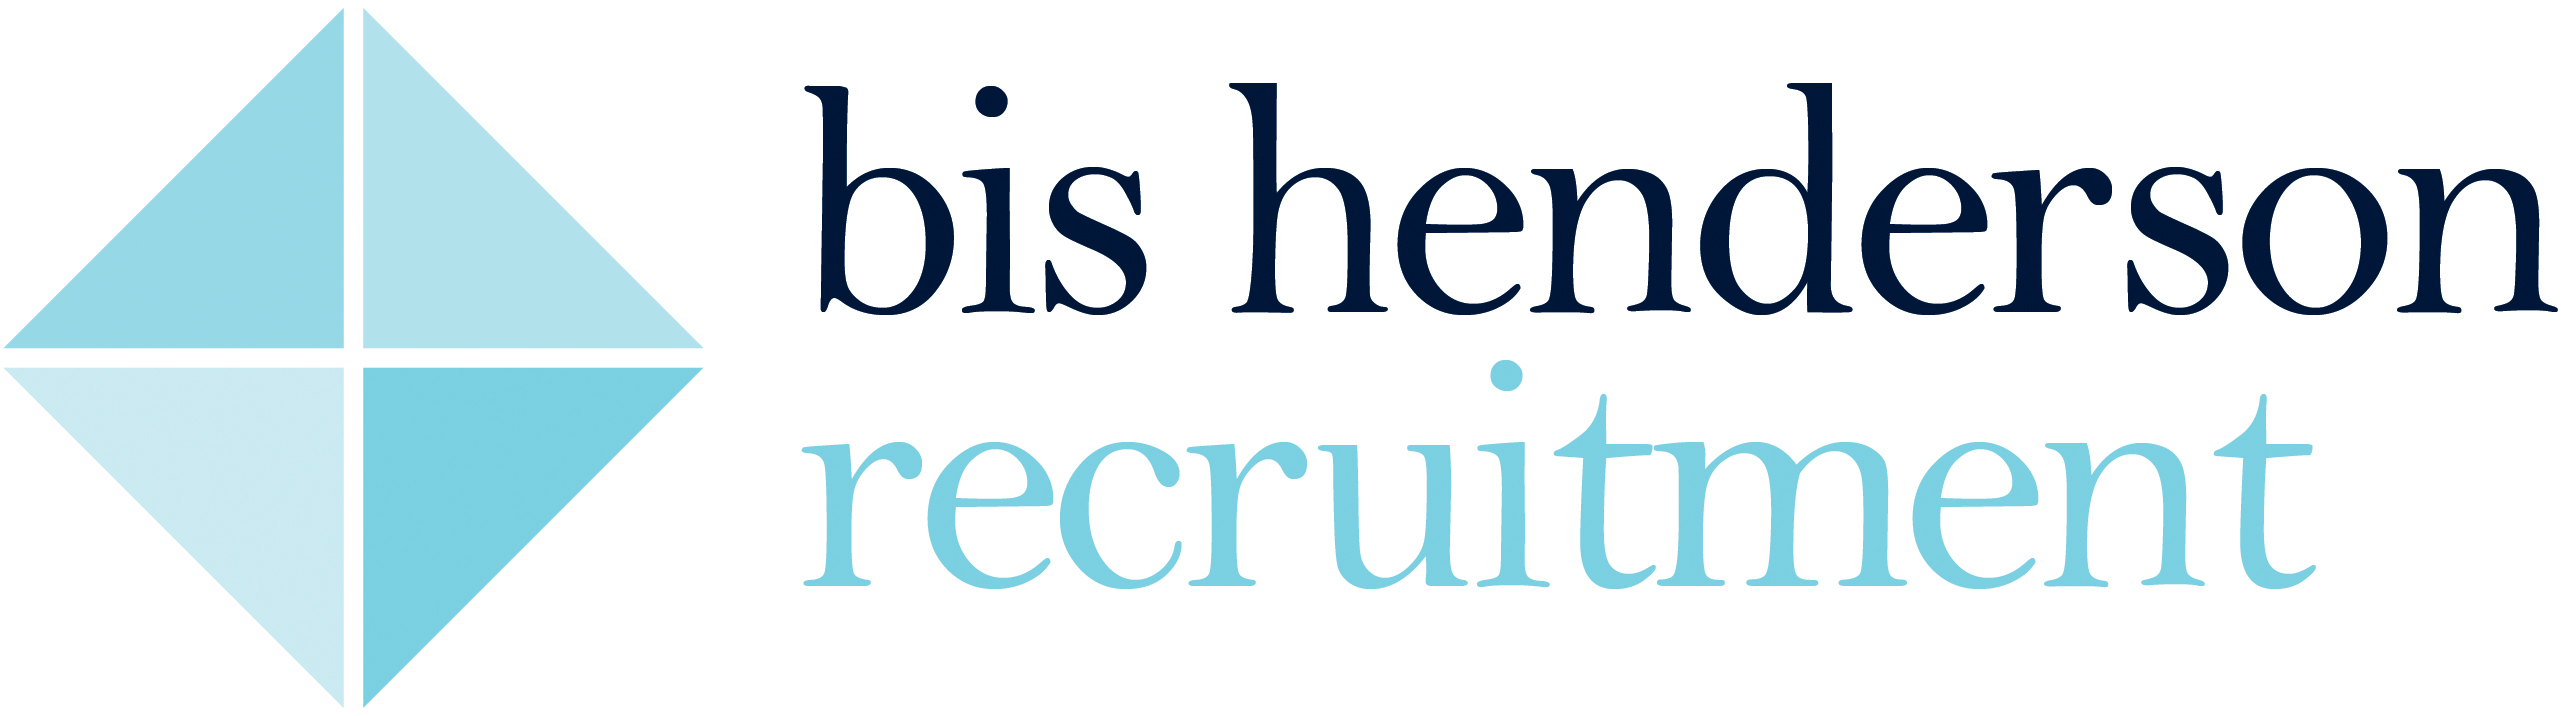 Bis Henderson Recruitment - Specialists in Supply Chain & Logistics Recruitment